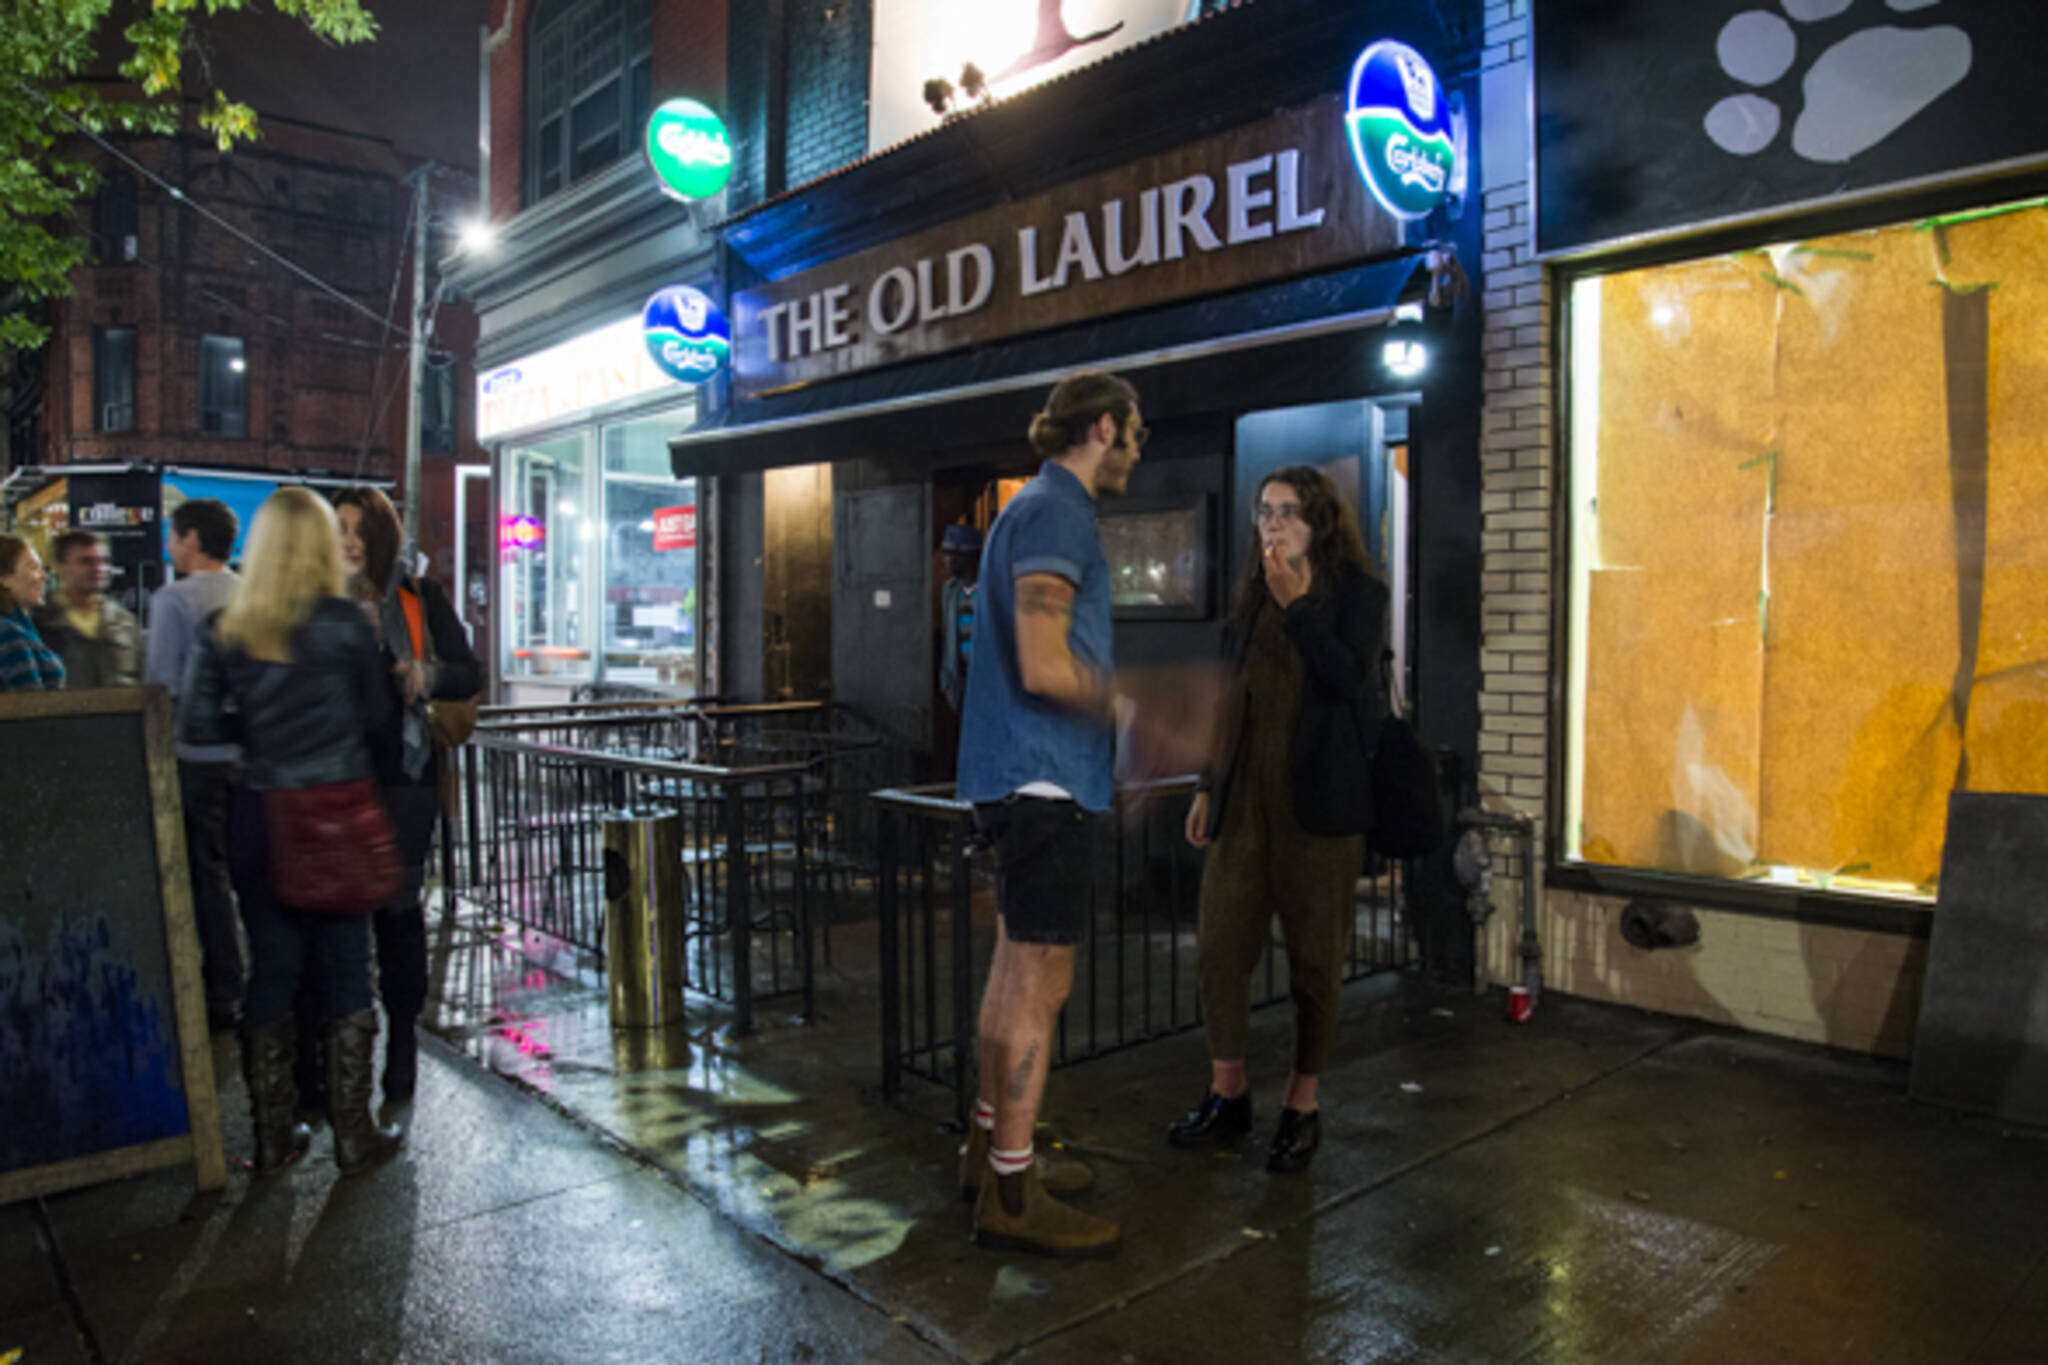 Old Laurel Toronto